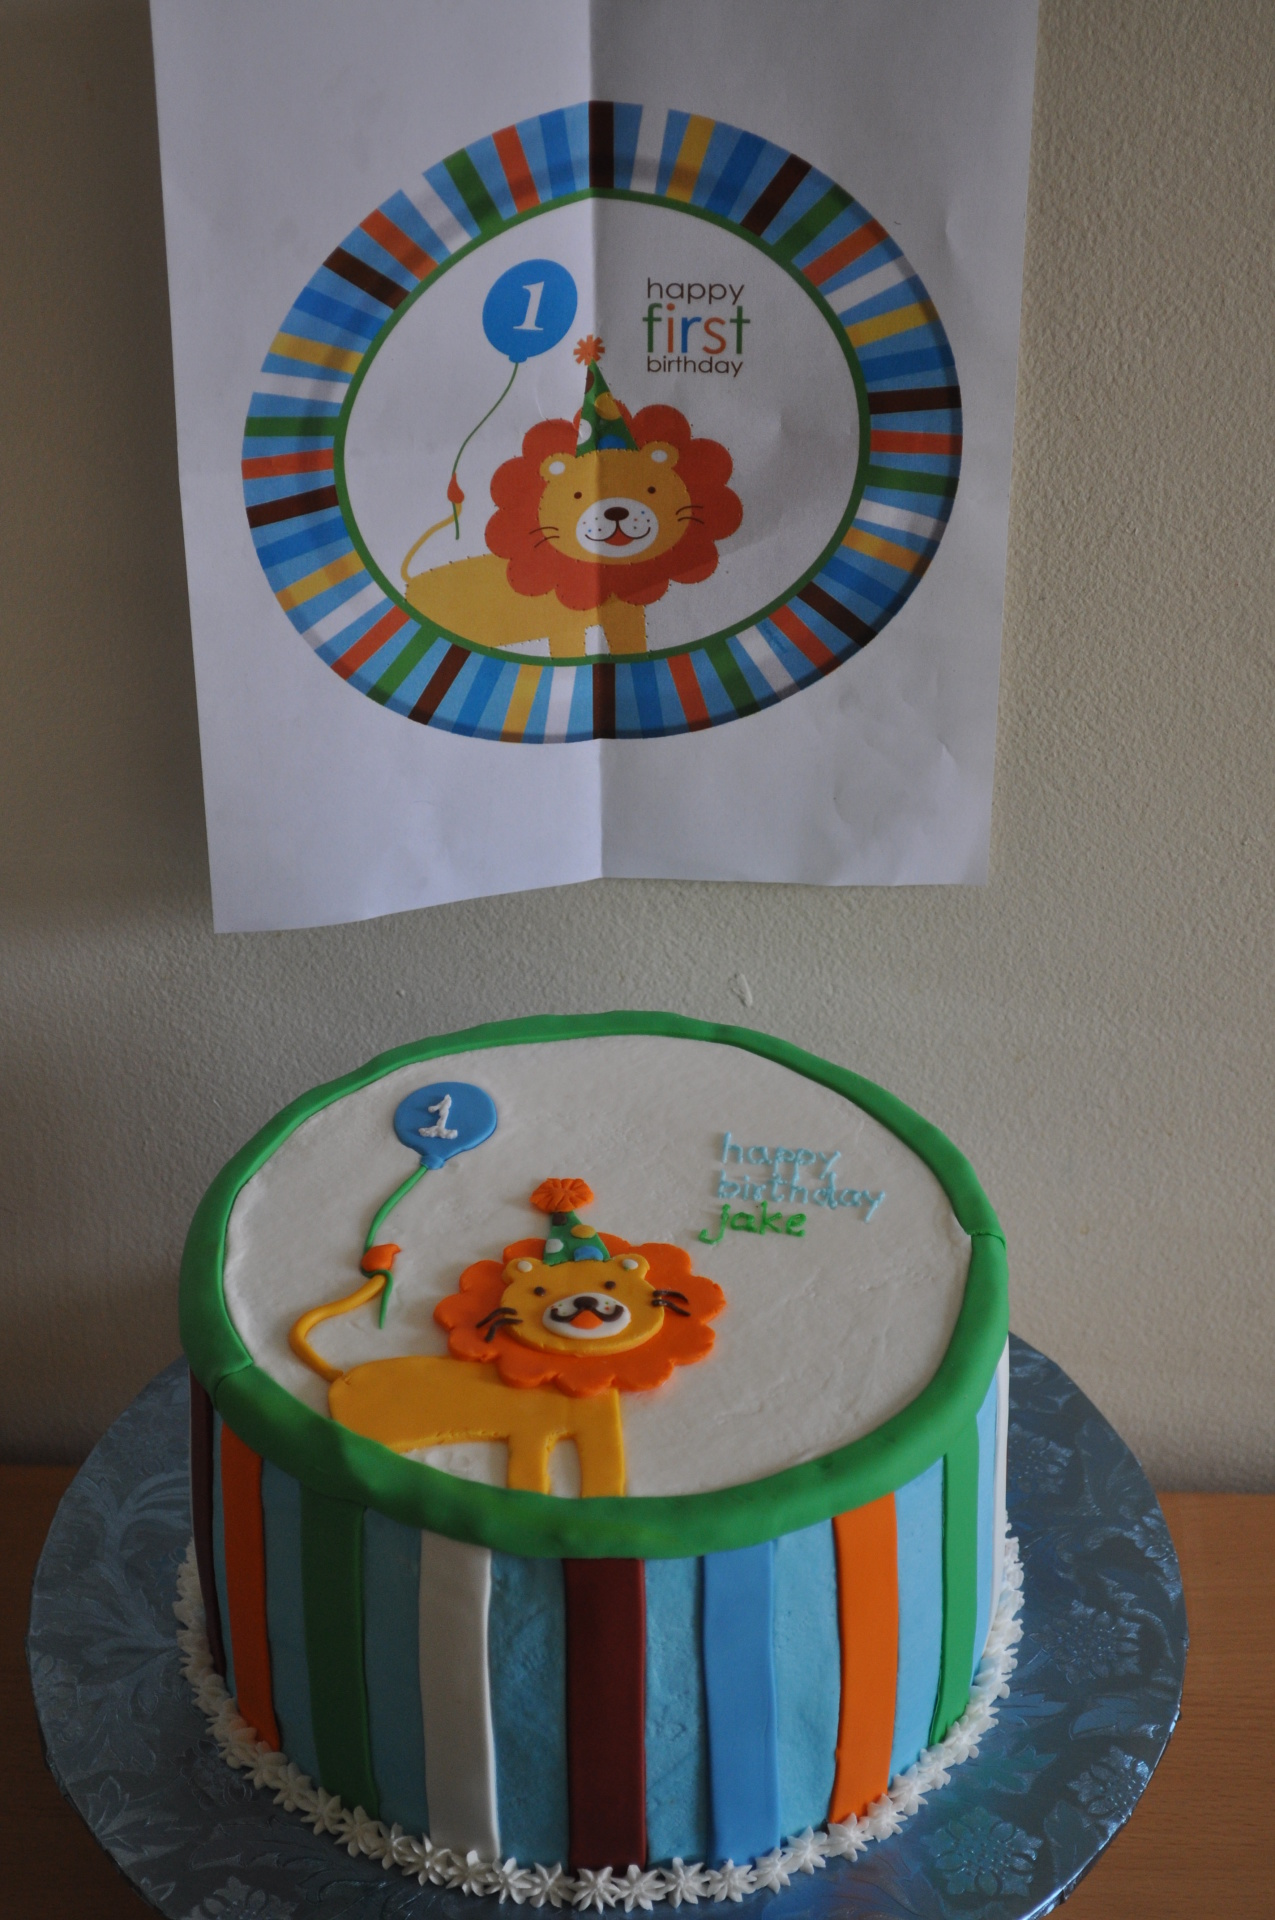 A lion birthday cake to match the invitation